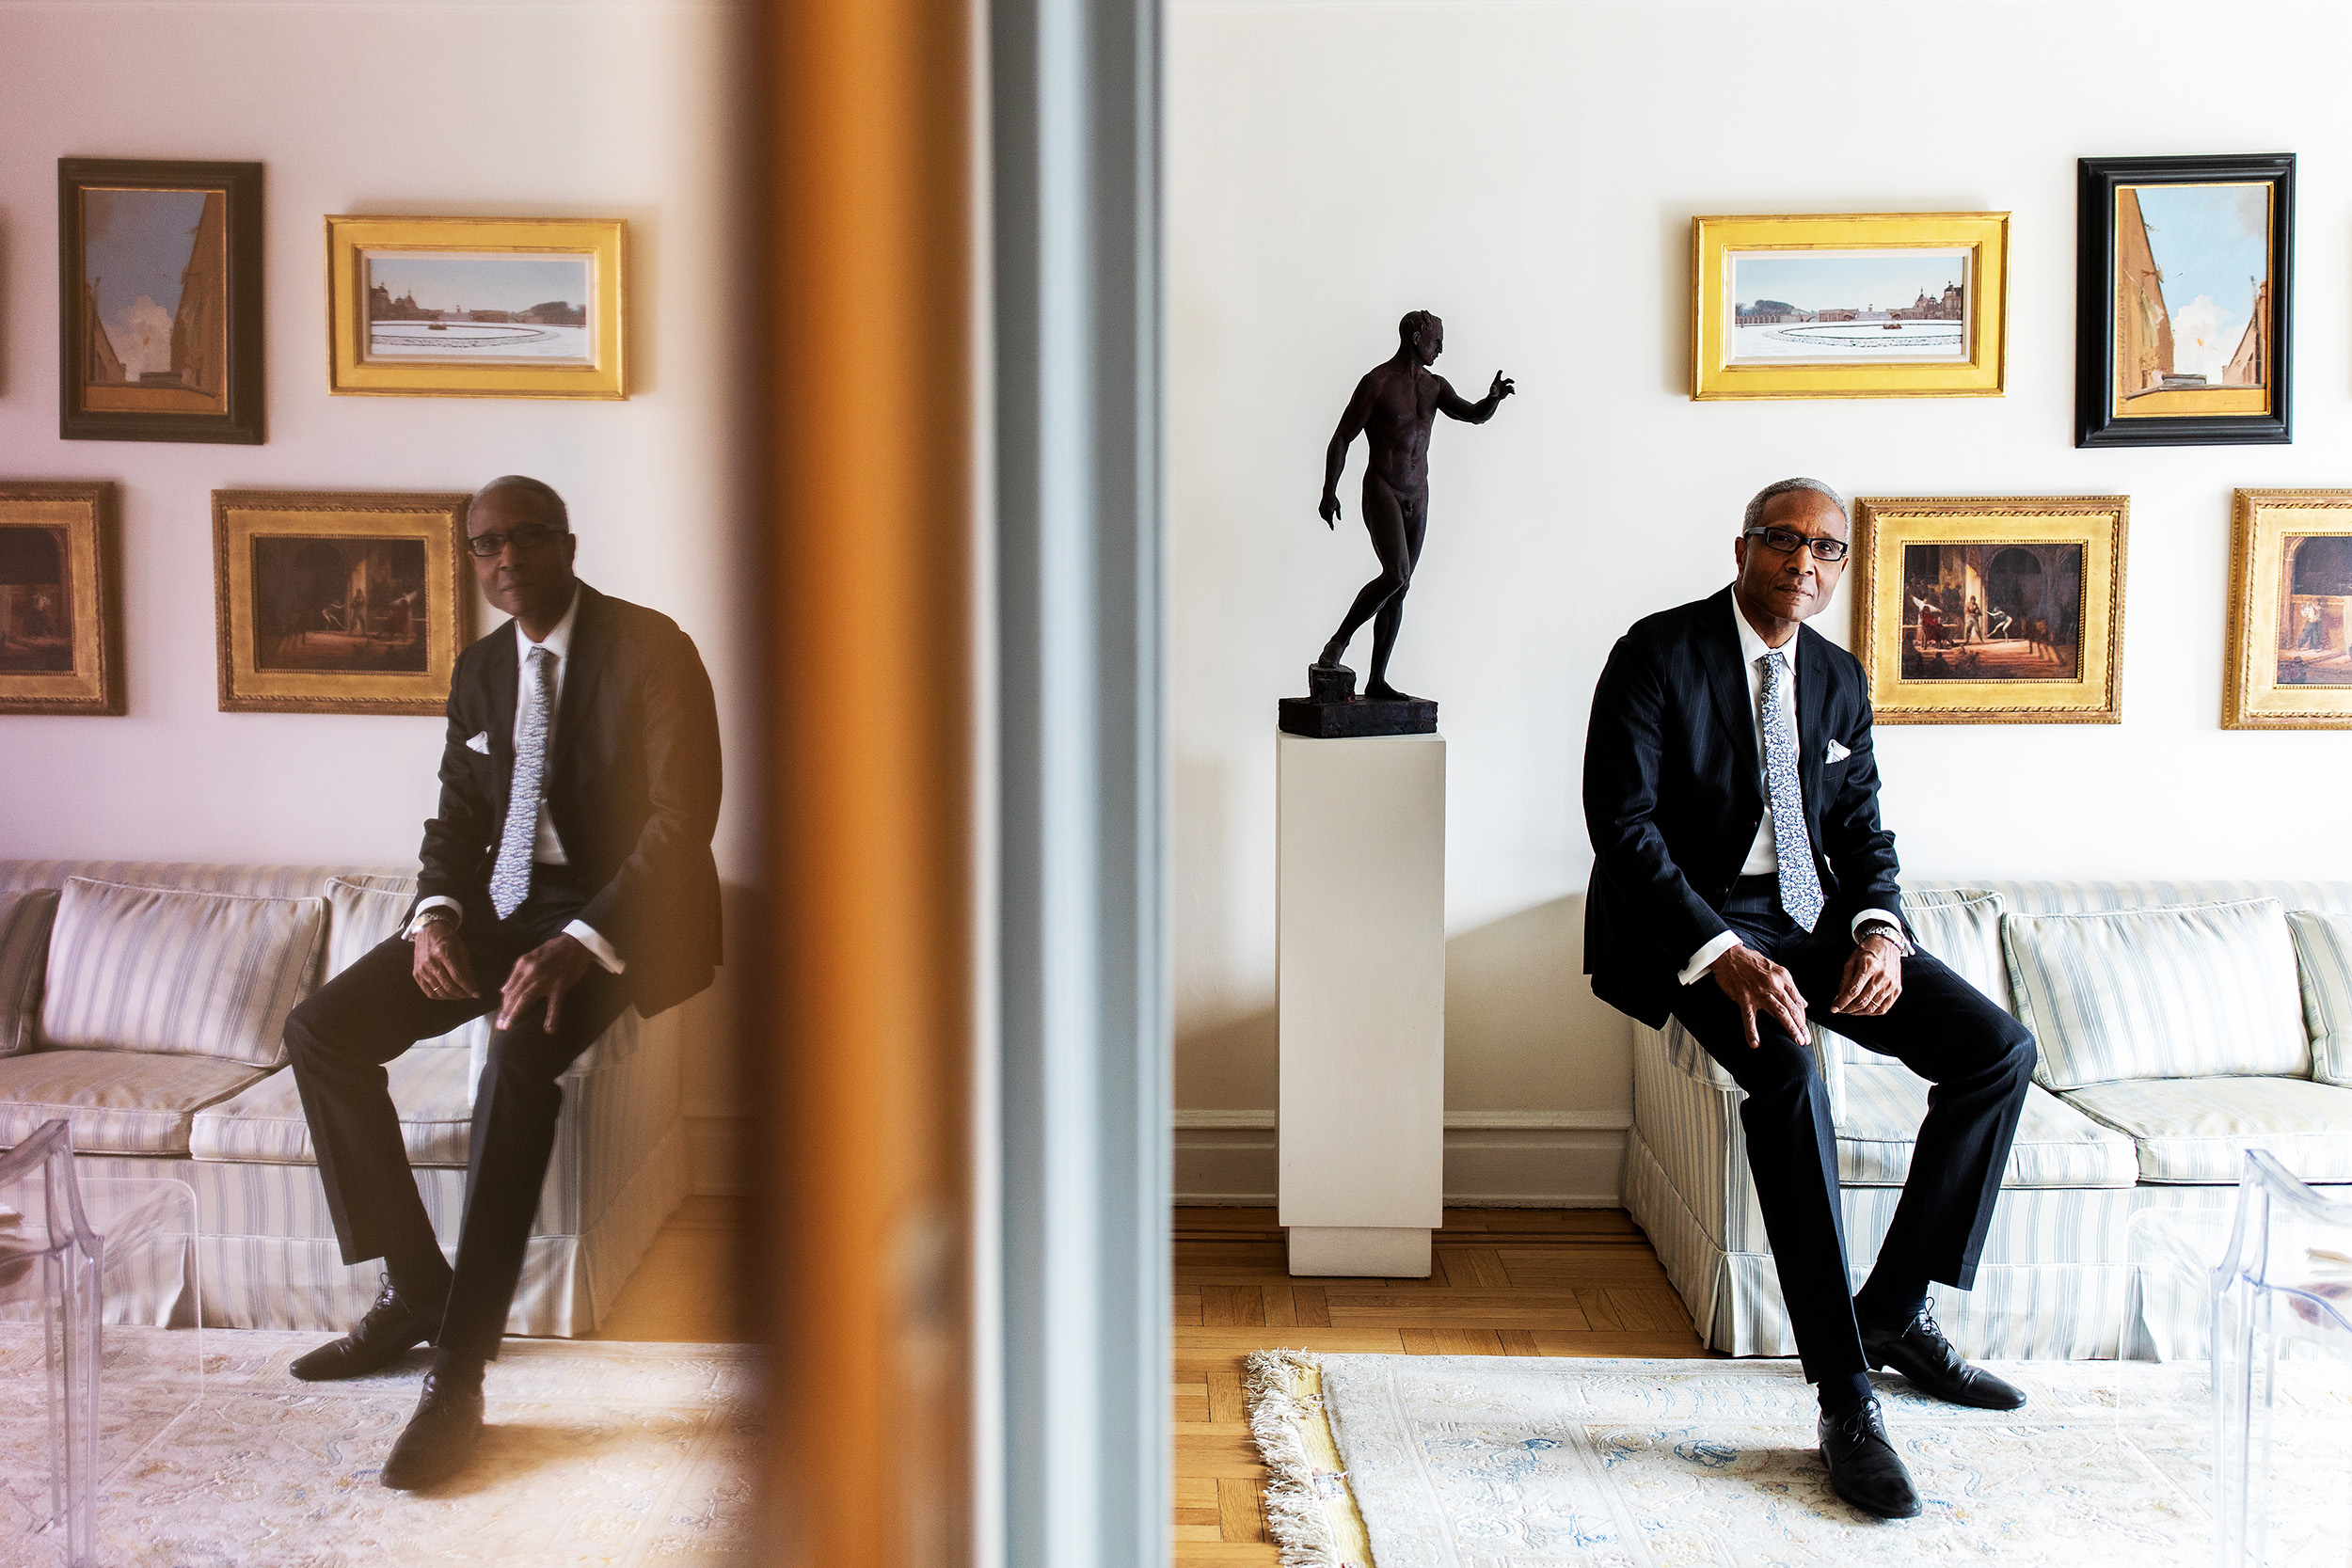 Senior corporate attorney, Gregory Peterson at his apartment in Manhattan, New York. Gregory is part of Columbia University's Class of 1973, the first graduating class of affirmative action students at the school. Gregory is an avid art collector and his apartment is filled with paintings, drawings and sculptures.